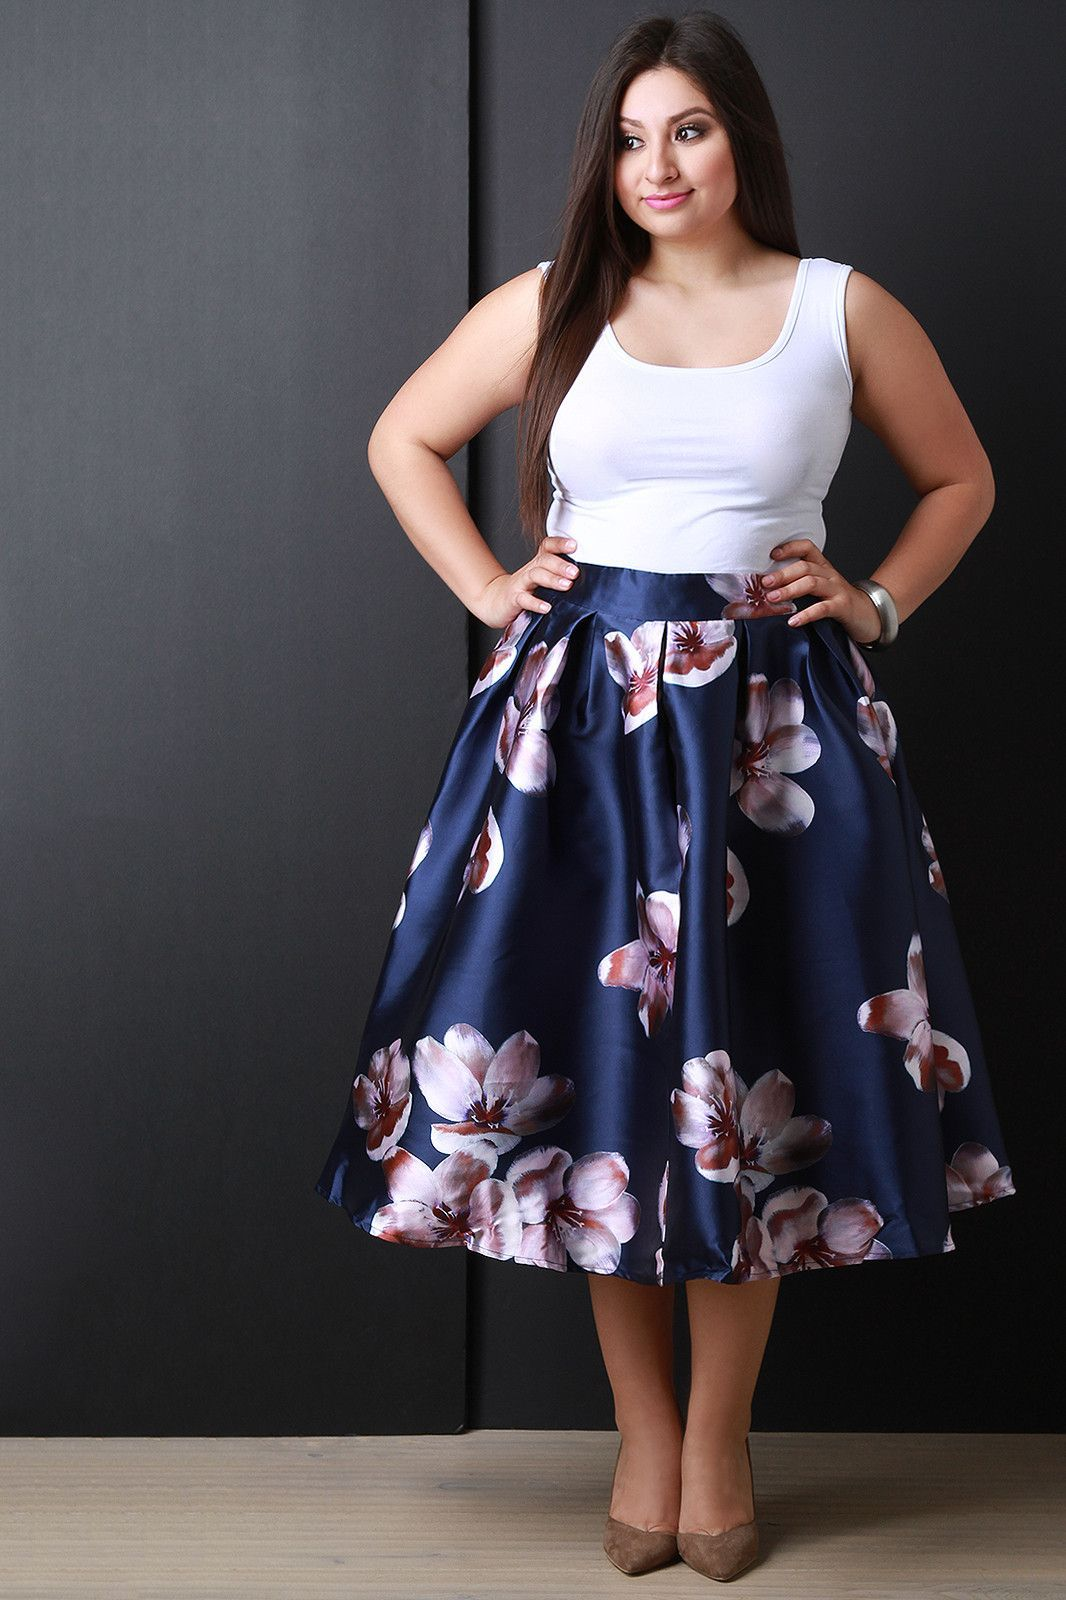 dcfd7ca385c Description This plus size skirt features taffeta